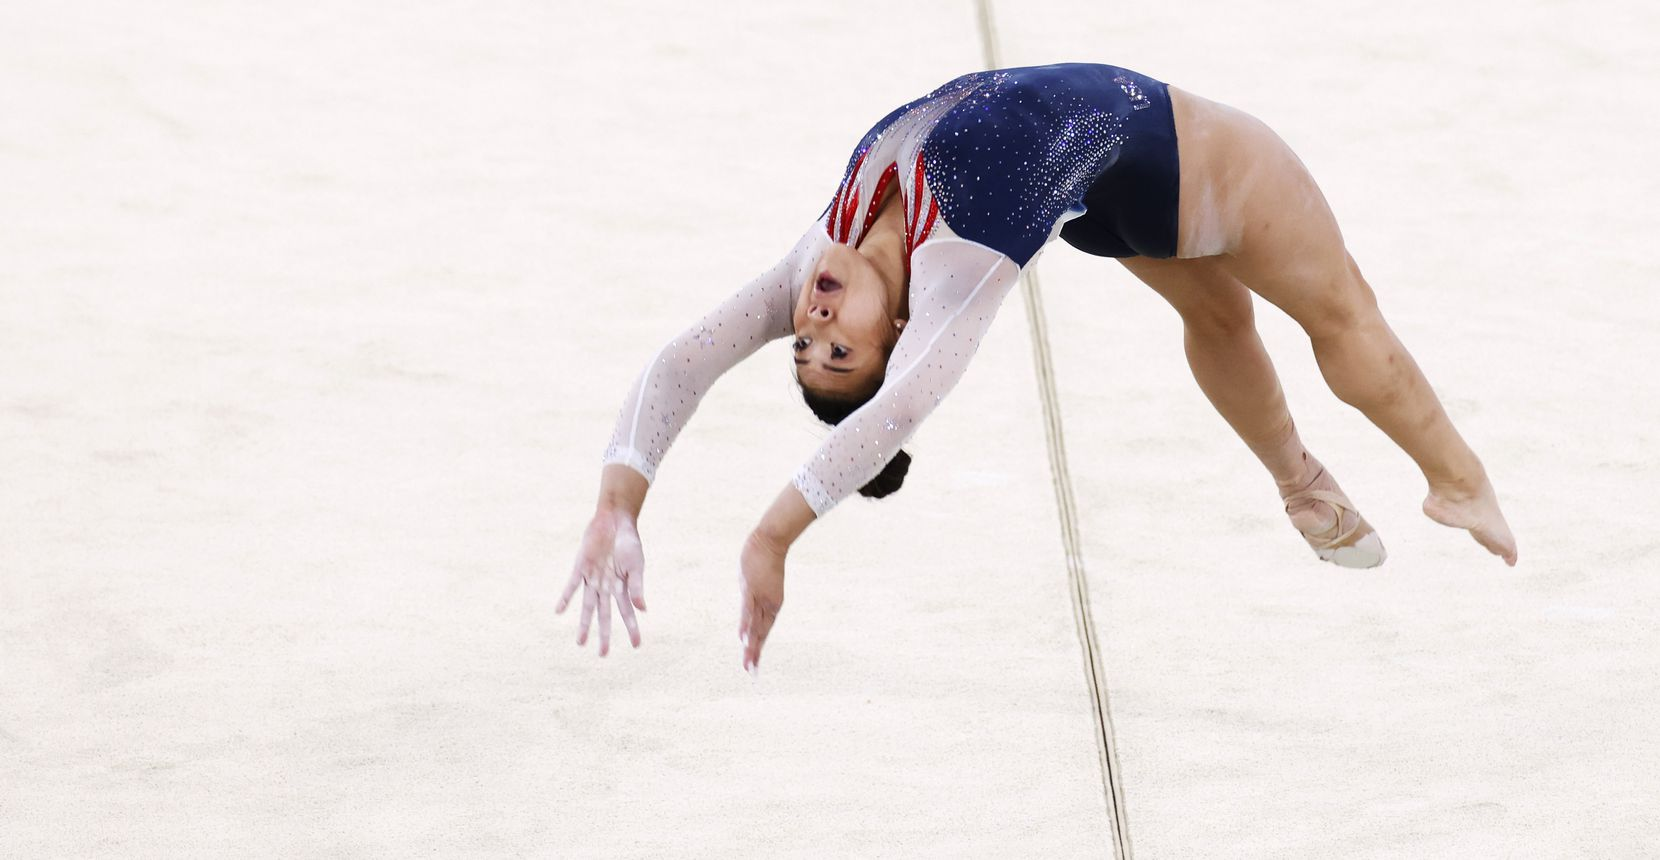 USA's Sunisa Lee competes on the floor during the women's all-around final at the postponed 2020 Tokyo Olympics at Ariake Gymnastics Centre, on Thursday, July 29, 2021, in Tokyo, Japan. (Vernon Bryant/The Dallas Morning News)